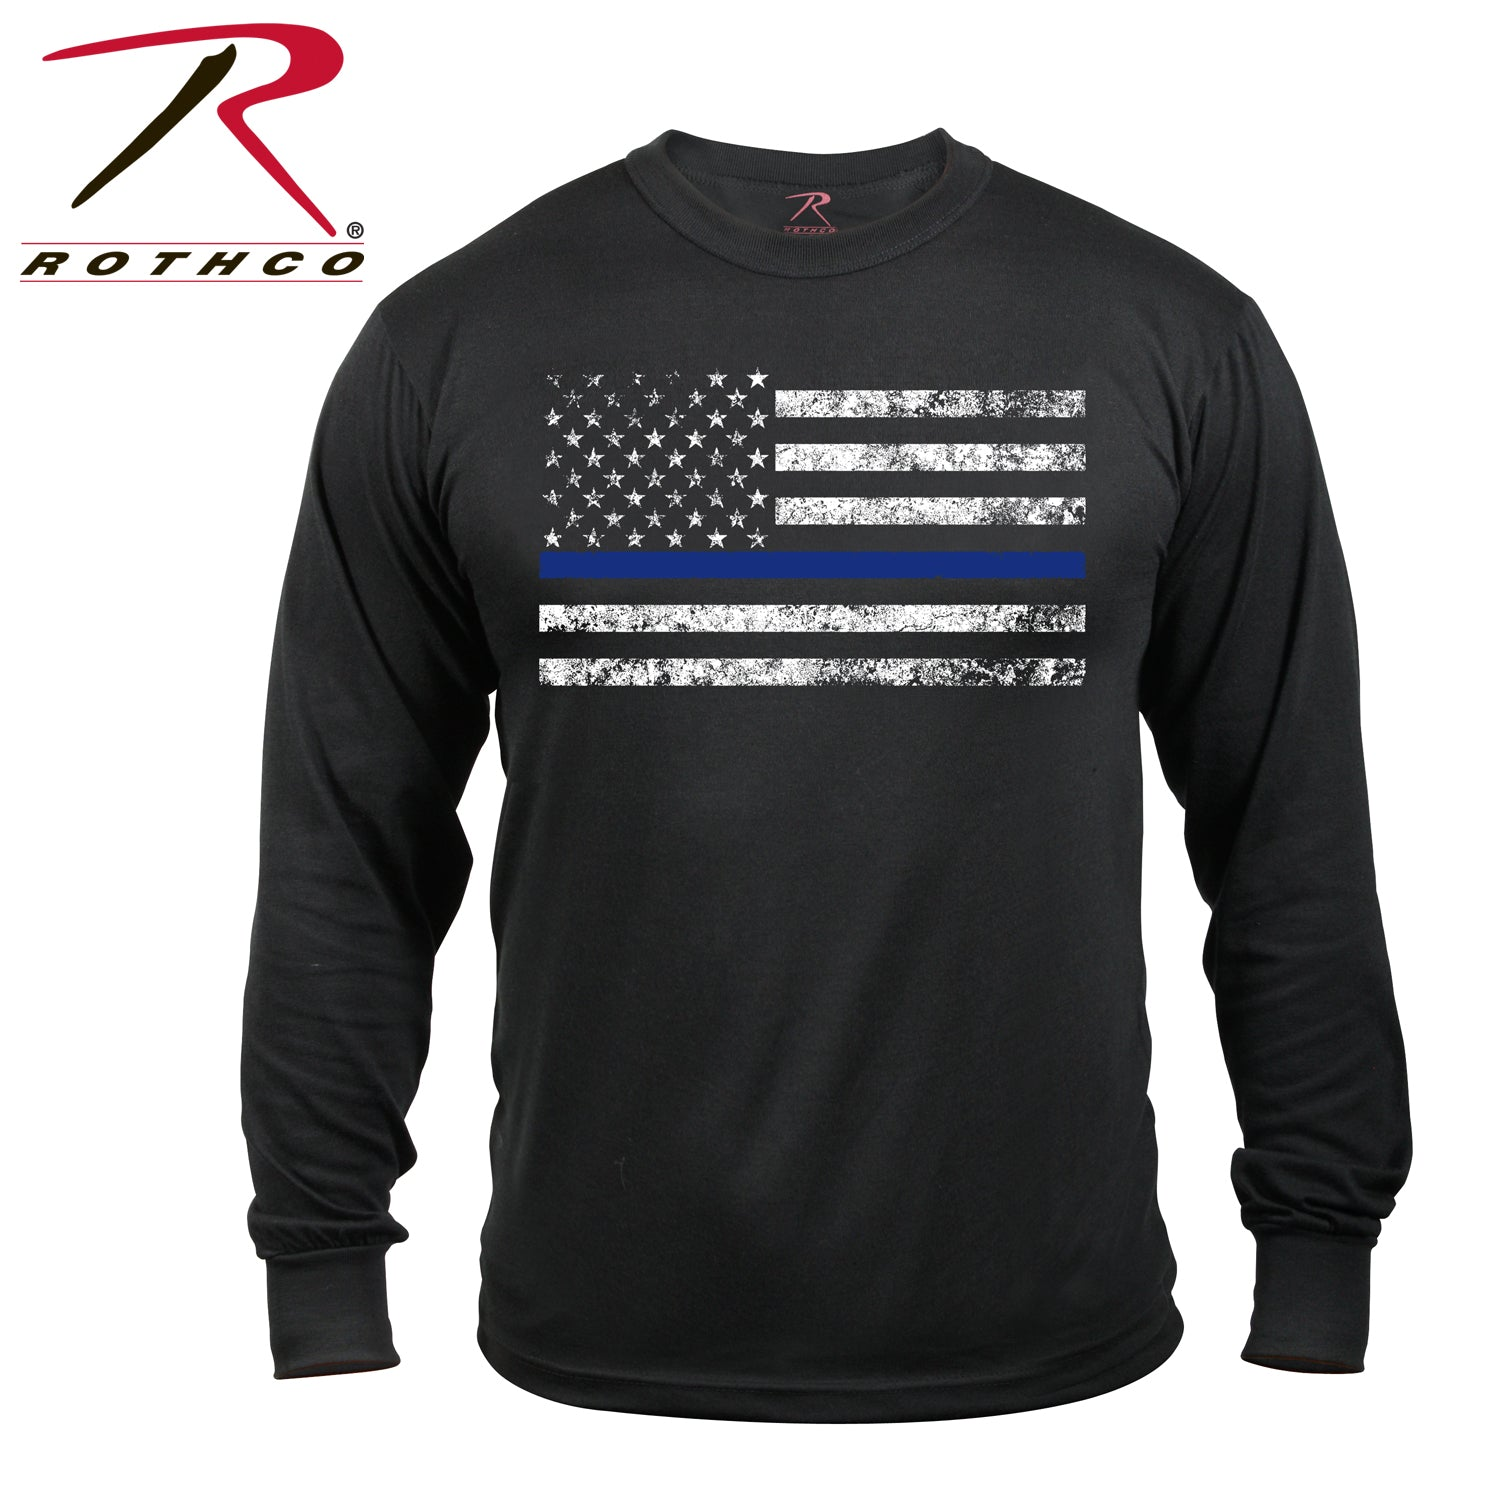 Rothco Thin Blue Line T-Shirt Long Sleeve - Red Diamond Uniform & Police Supply